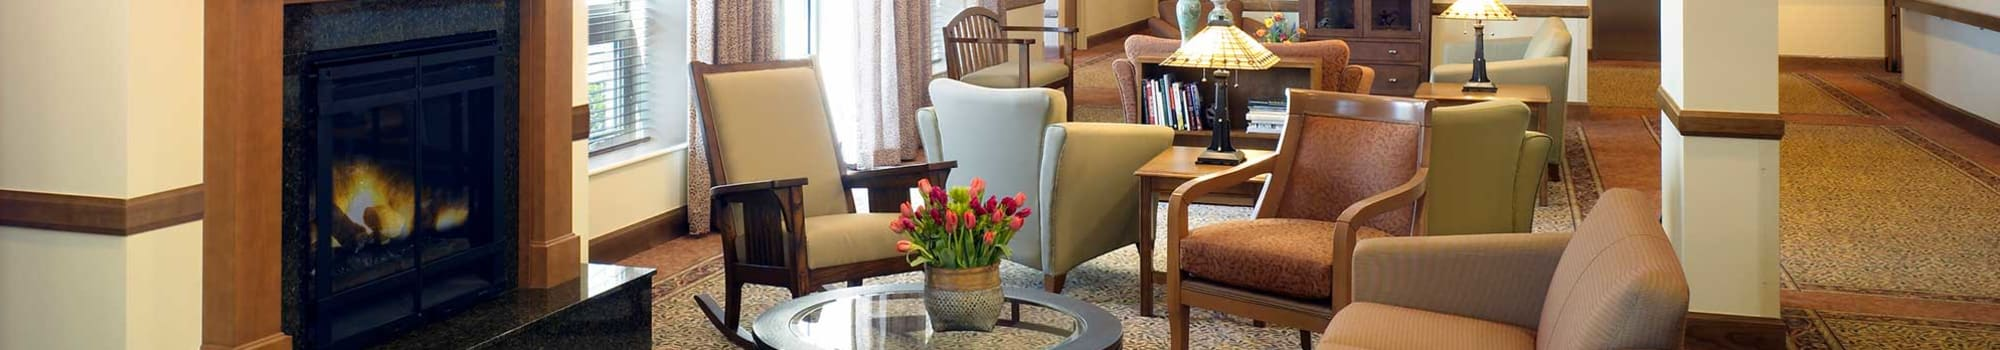 Assisted living in Vandalia, IL